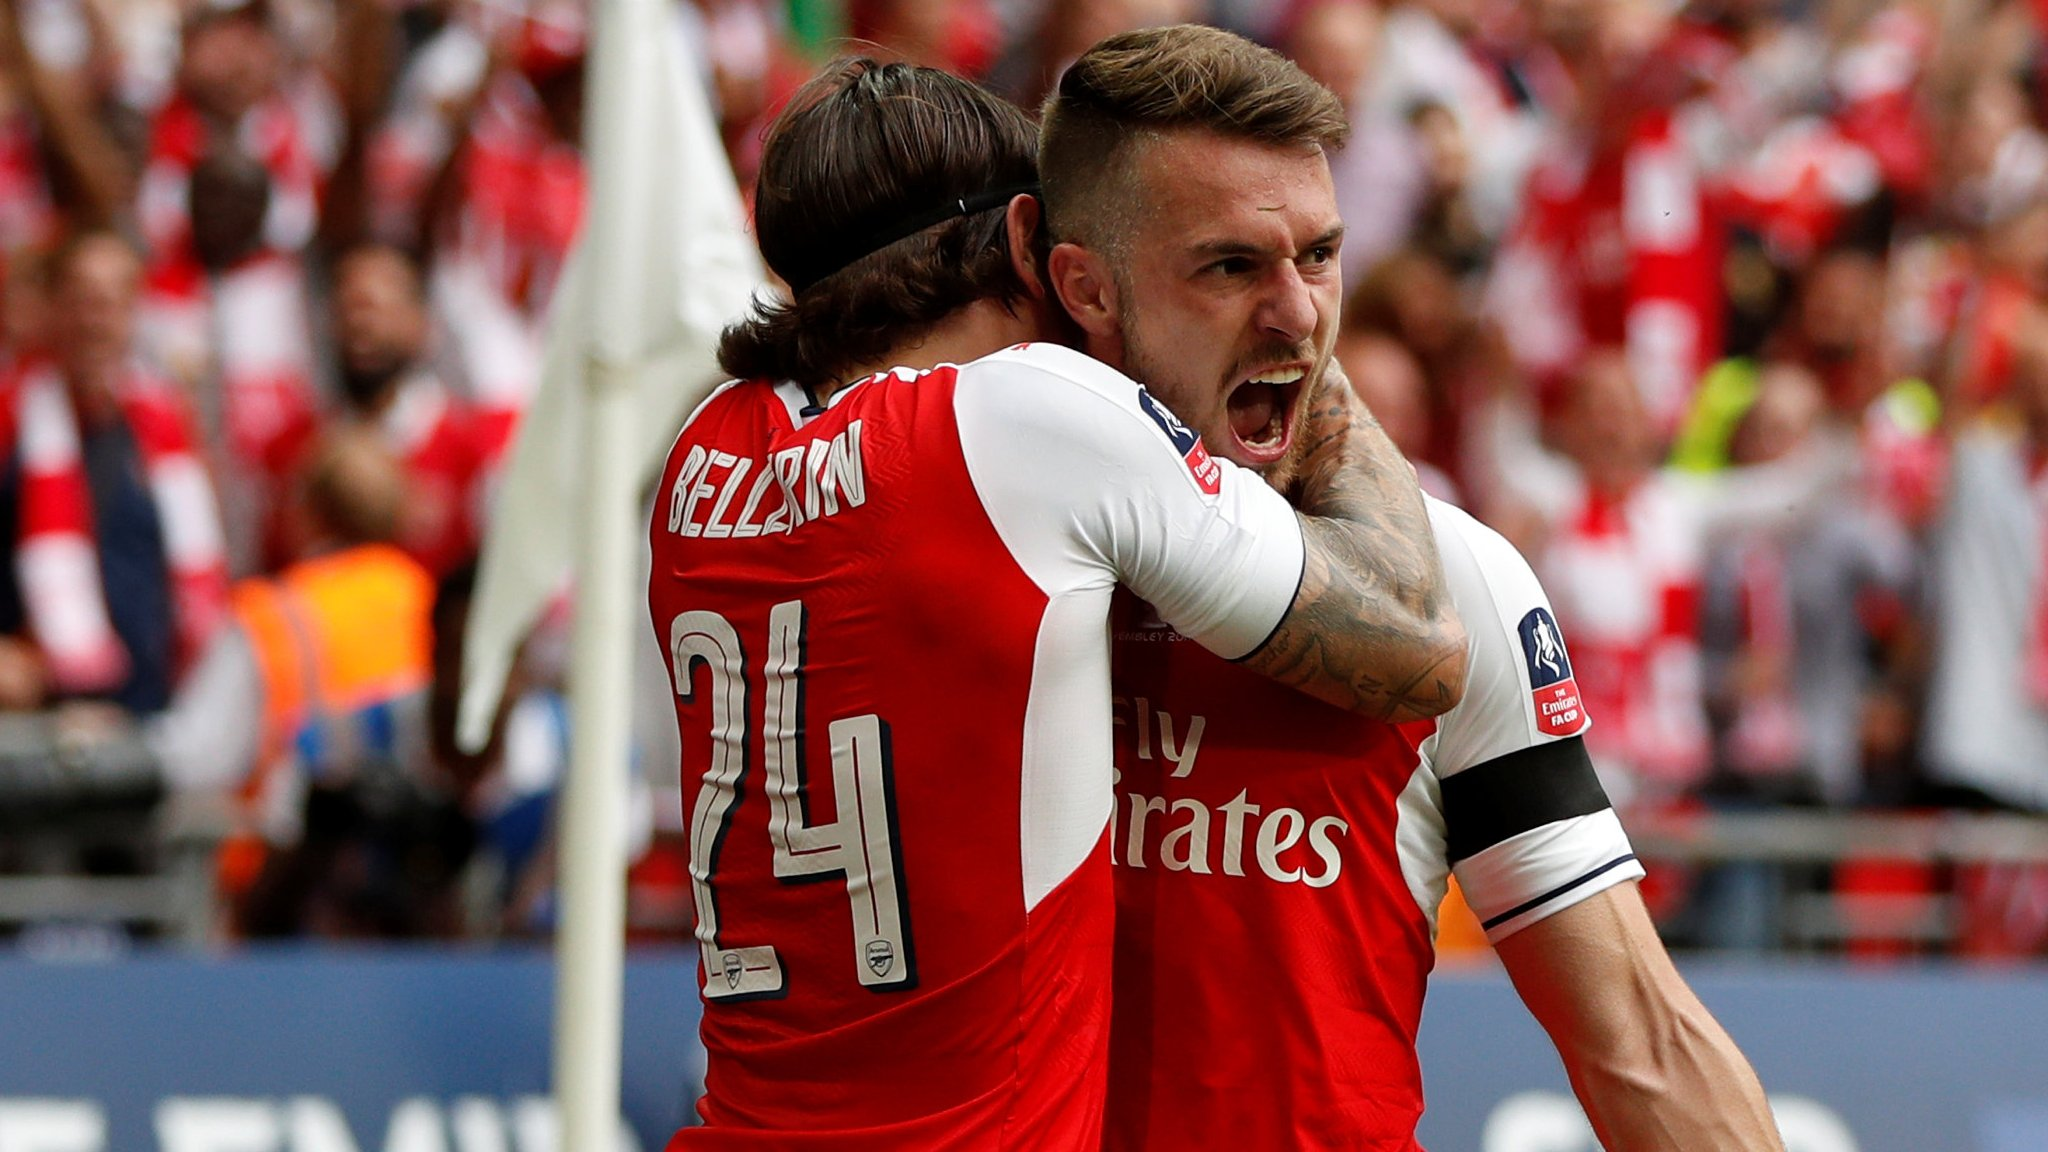 FA Cup final: Aaron Ramsey scores Arsenal winner against Chelsea